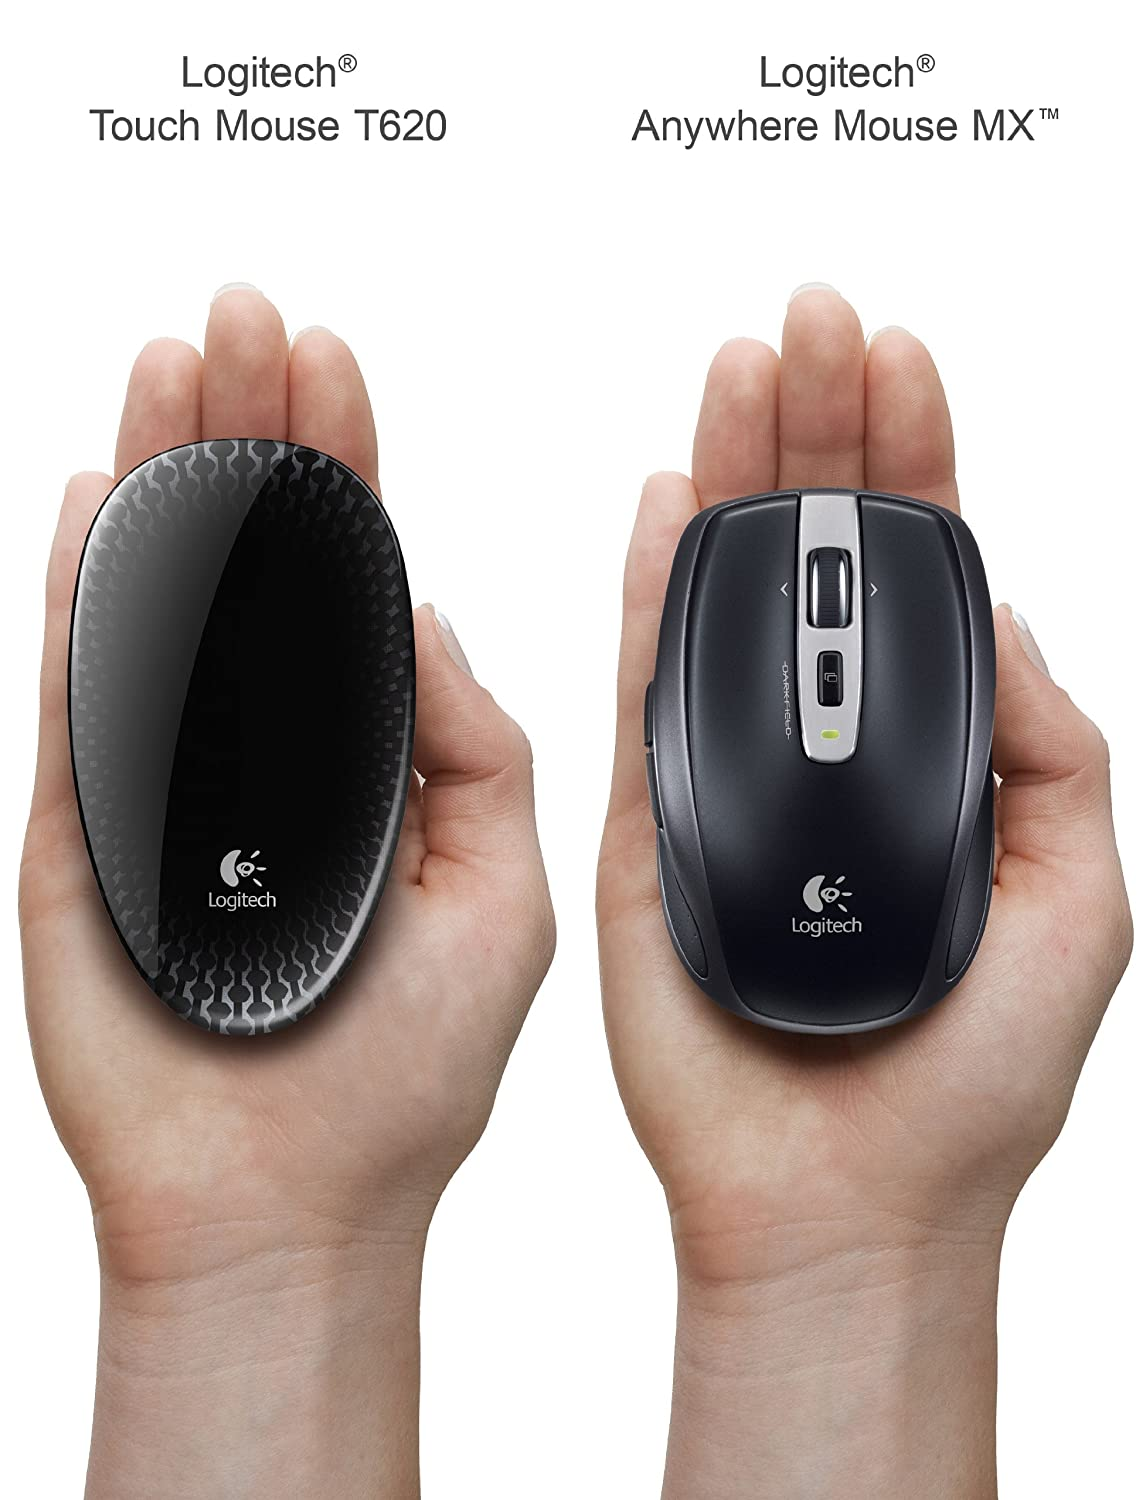 aca160230c1 Amazon.in: Buy Logitech Touch Mouse T620 with Full Touch Surface for Windows  8 - Graphite (910-003346) Online at Low Prices in India | Logitech Reviews  & ...